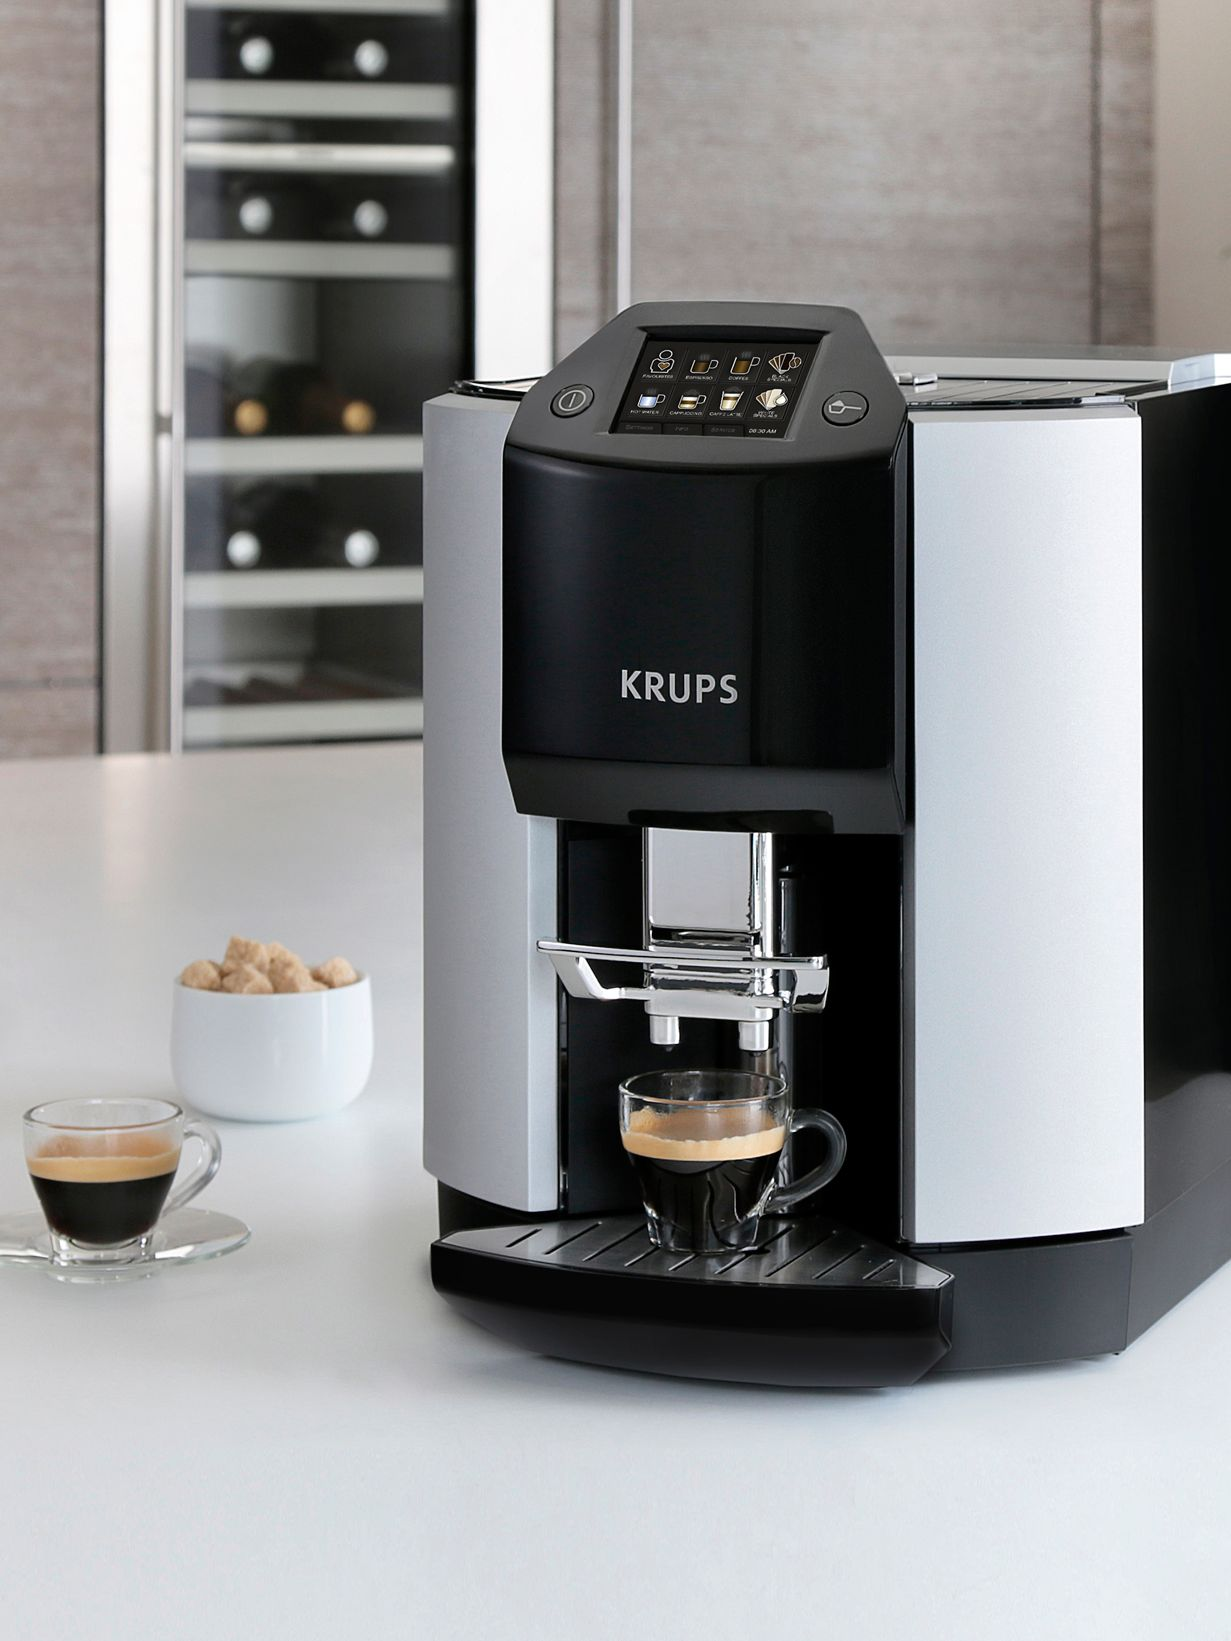 Italian Coffee Maker John Lewis : Buy KRUPS EA9010 Espresseria Bean-to-Cup Coffee Machine, Silver John Lewis